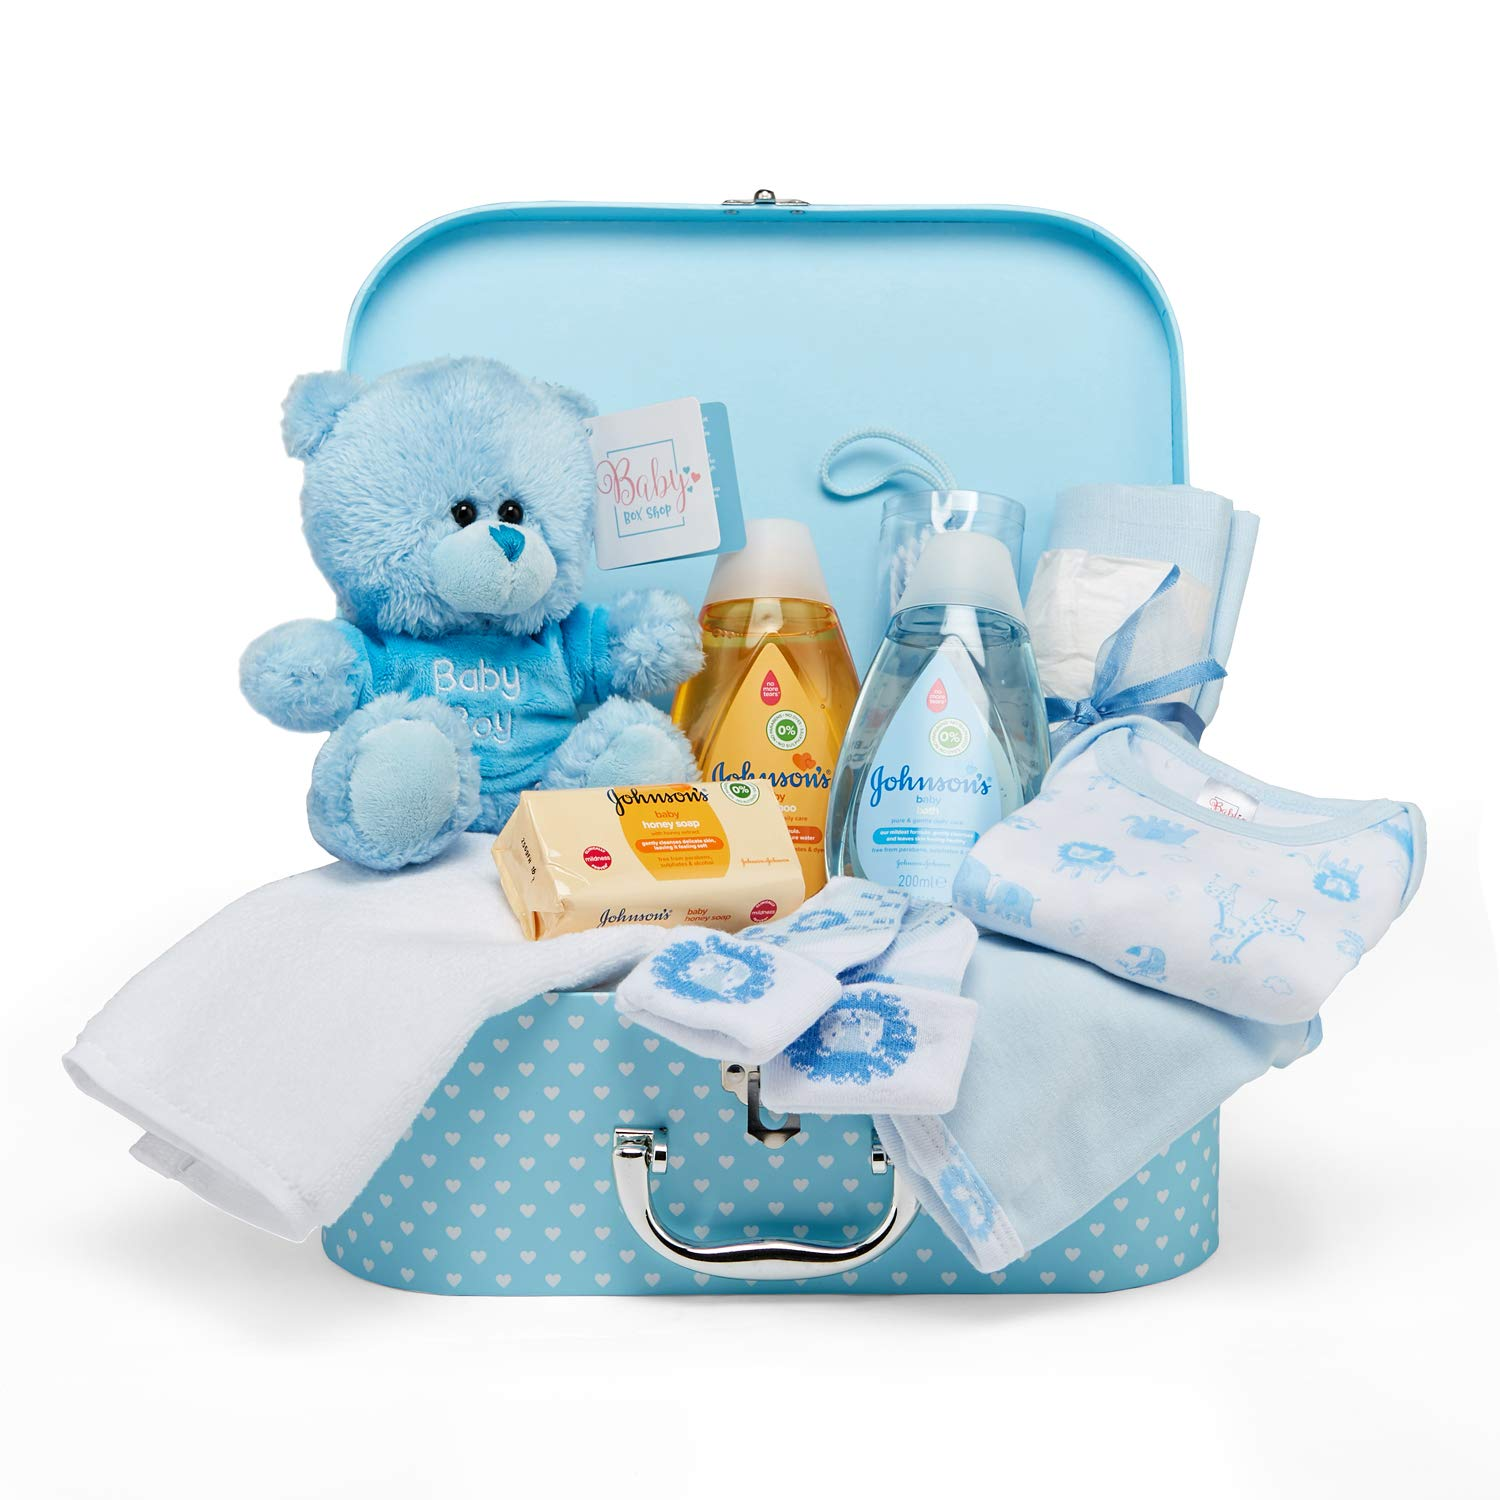 Amazon.com : Baby Gift Set – Keepsake Box in Blue with Baby Clothes, Teddy  Bear and Gifts for a Baby Boy : Baby